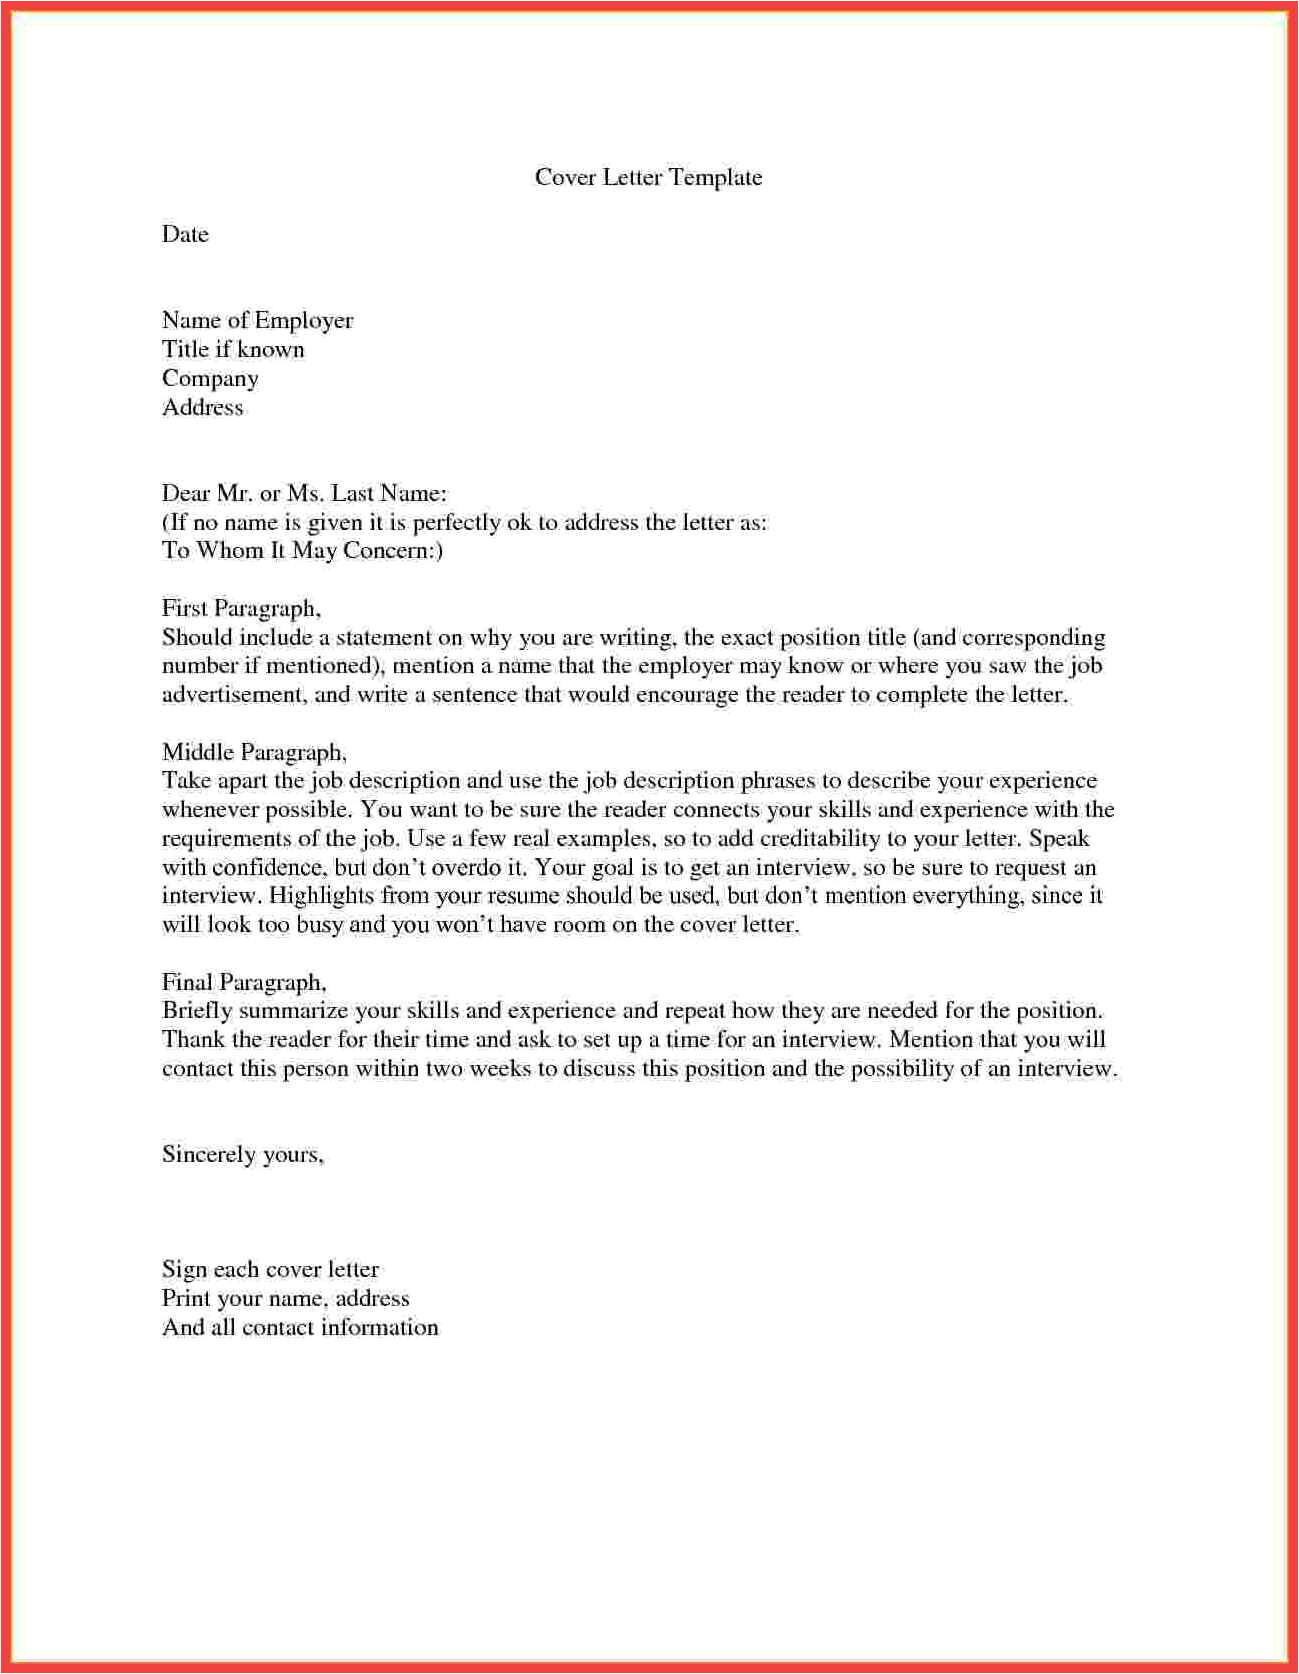 How to Address In Cover Letter with No Name How to Start A Cover Letter Memo Example